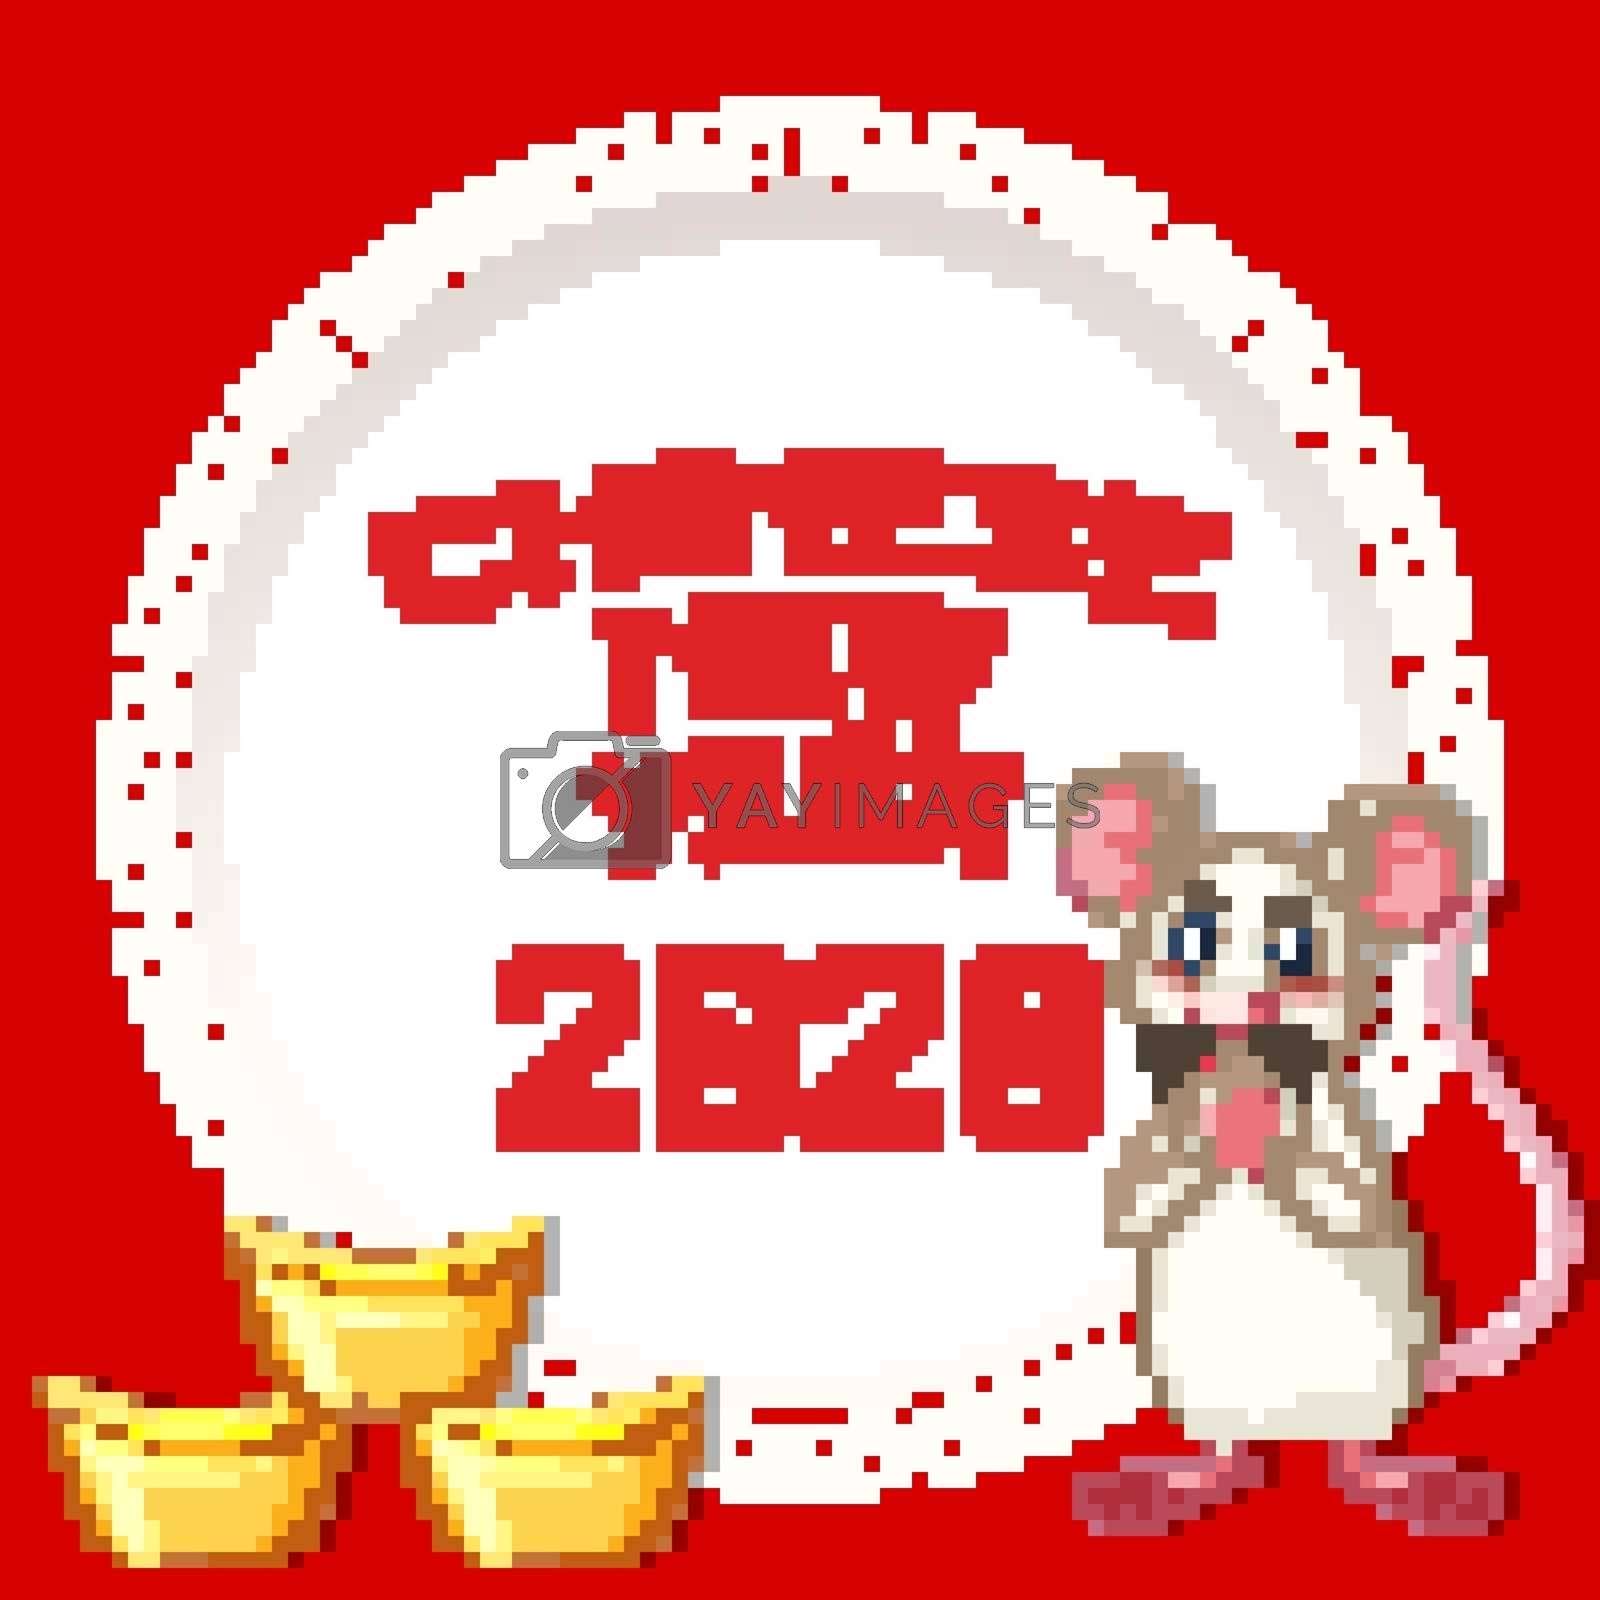 Happy new year background design with rat and gold illustration